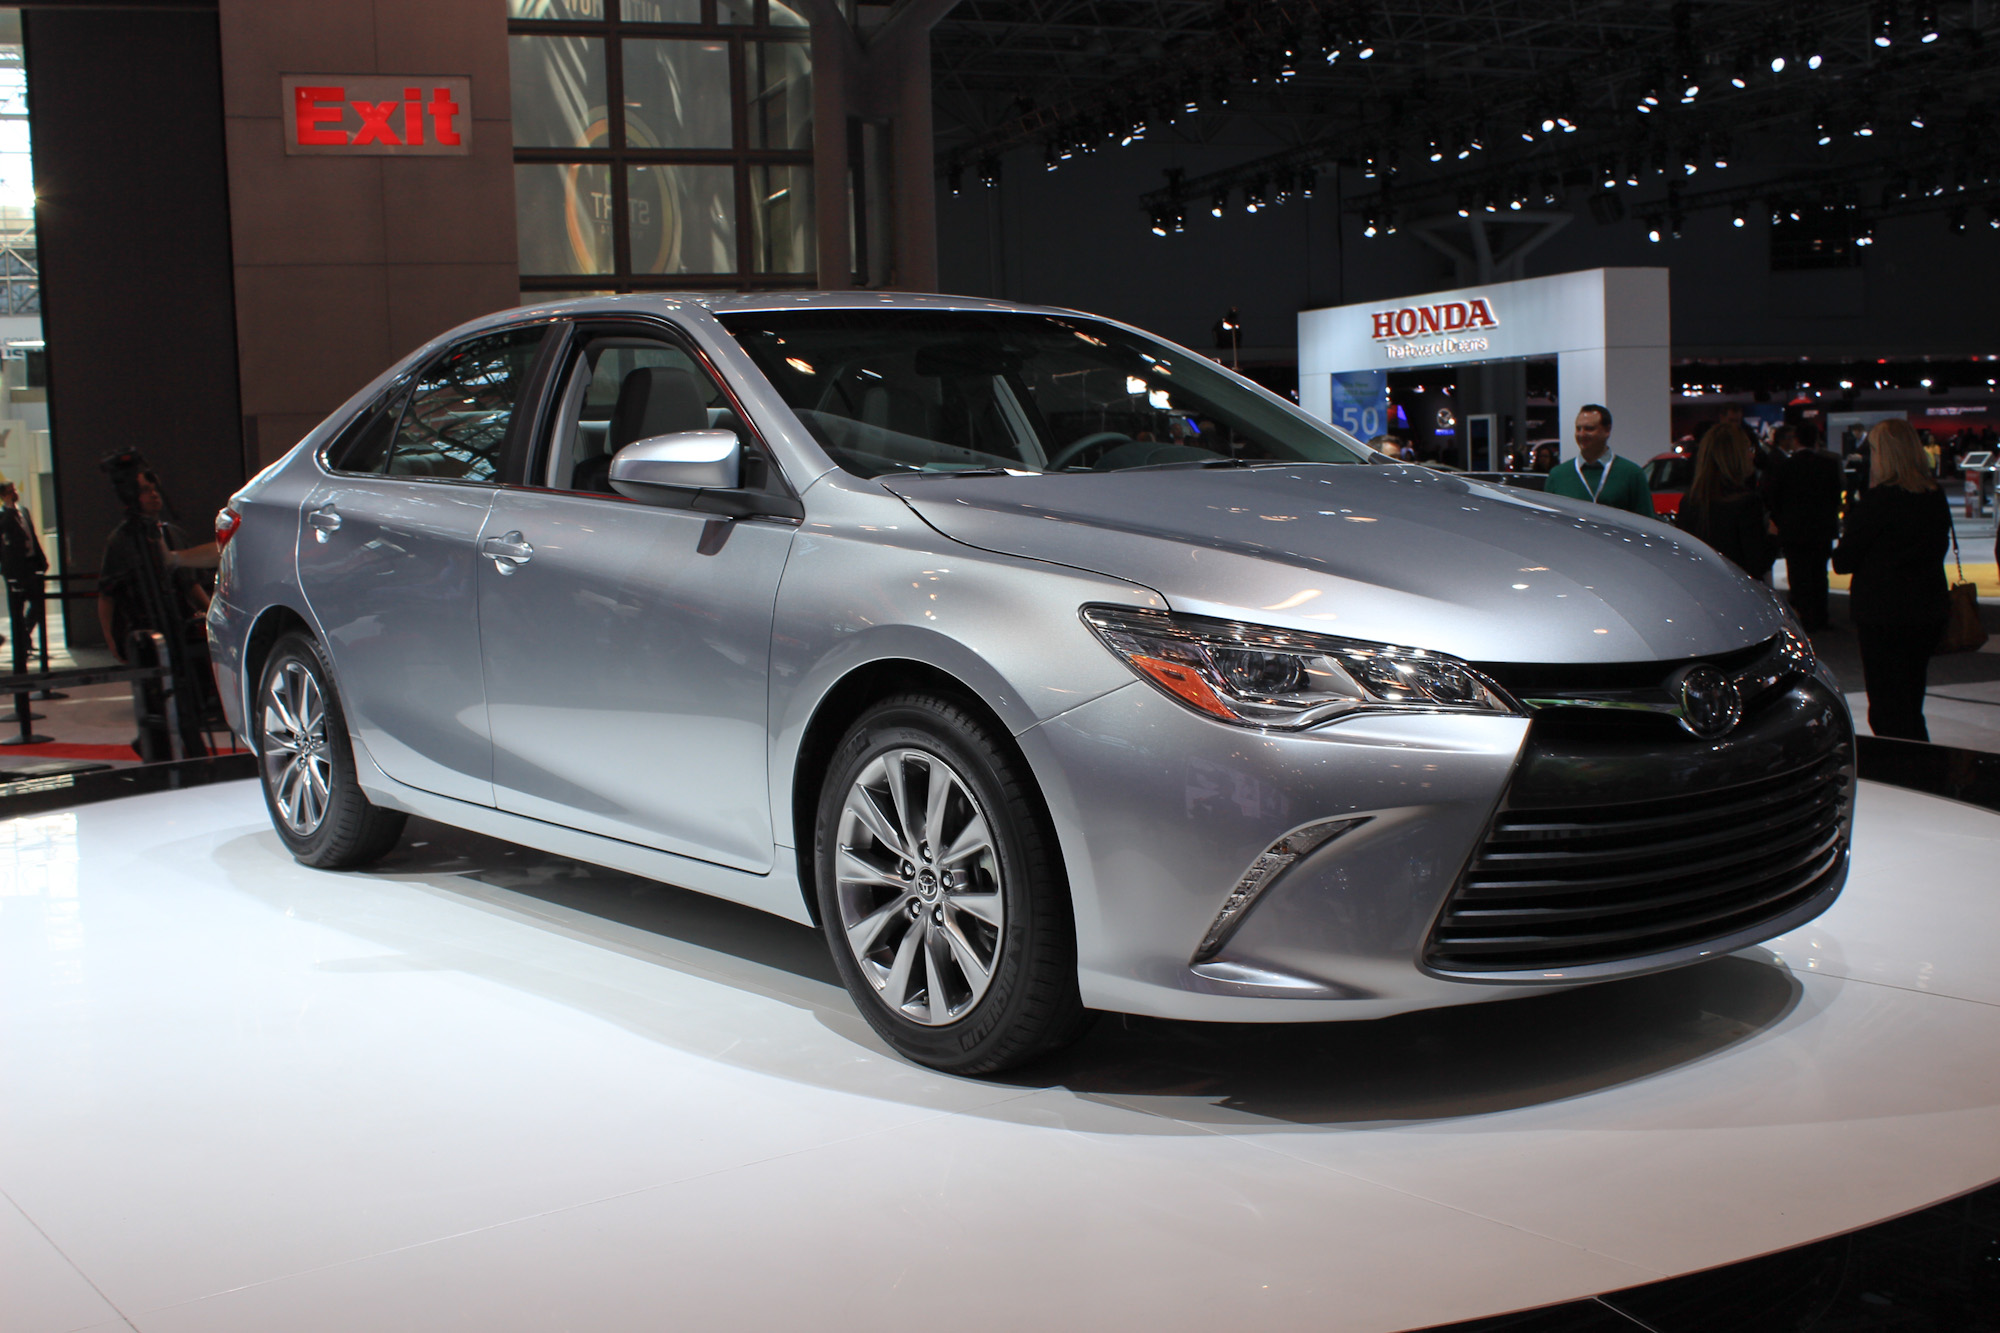 2015 toyota camry 2014 new york auto show 100464170. Black Bedroom Furniture Sets. Home Design Ideas